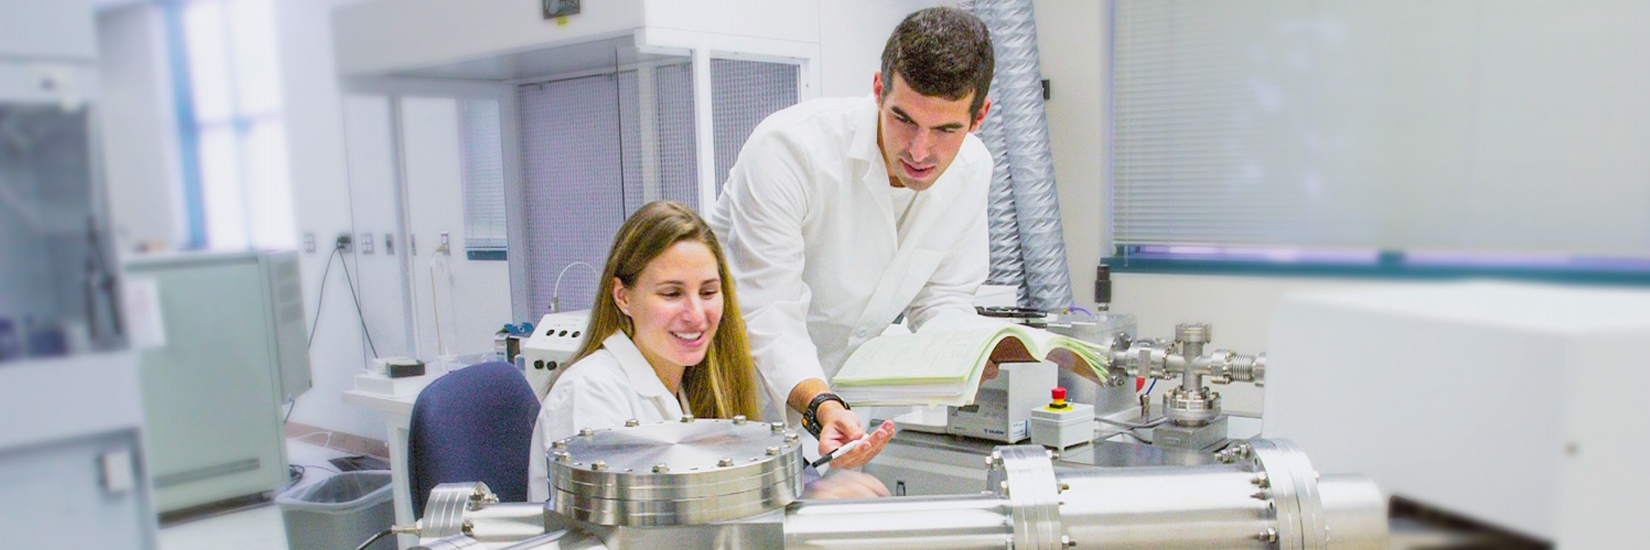 A student and professor working in a lab